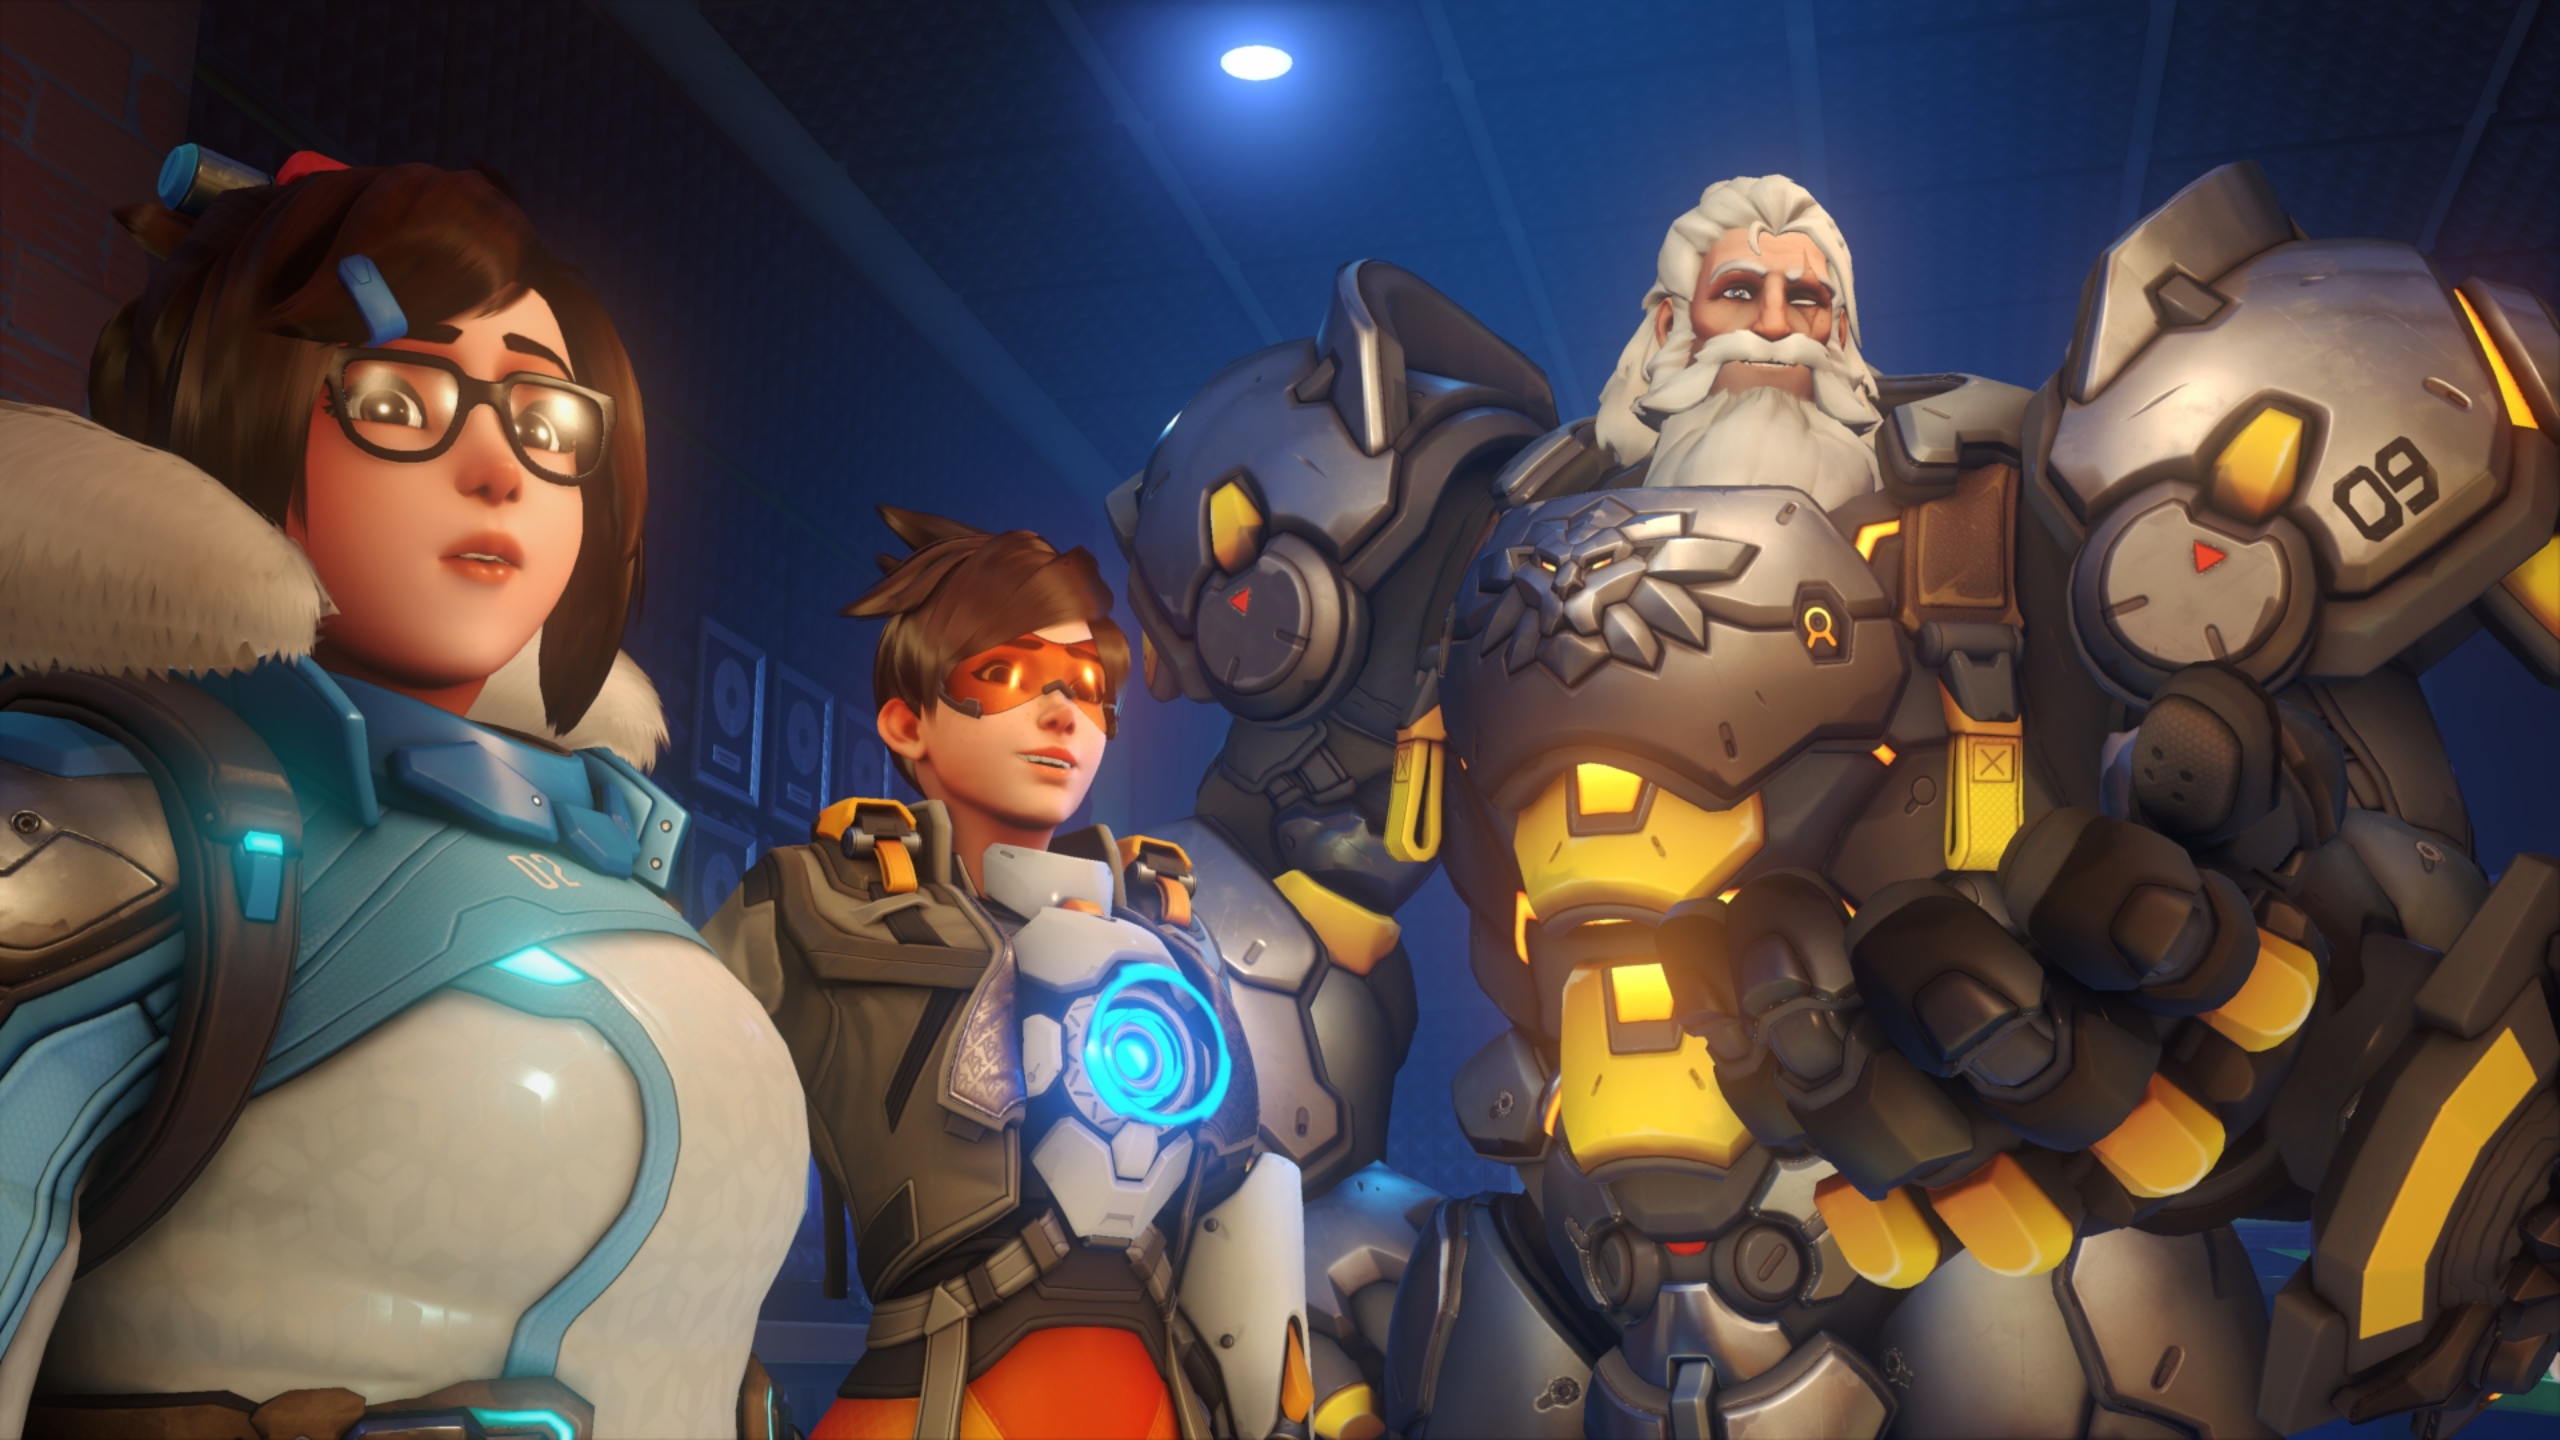 Overwatch 2: Release date, story missions, loot boxes, and more. | PC Gamer